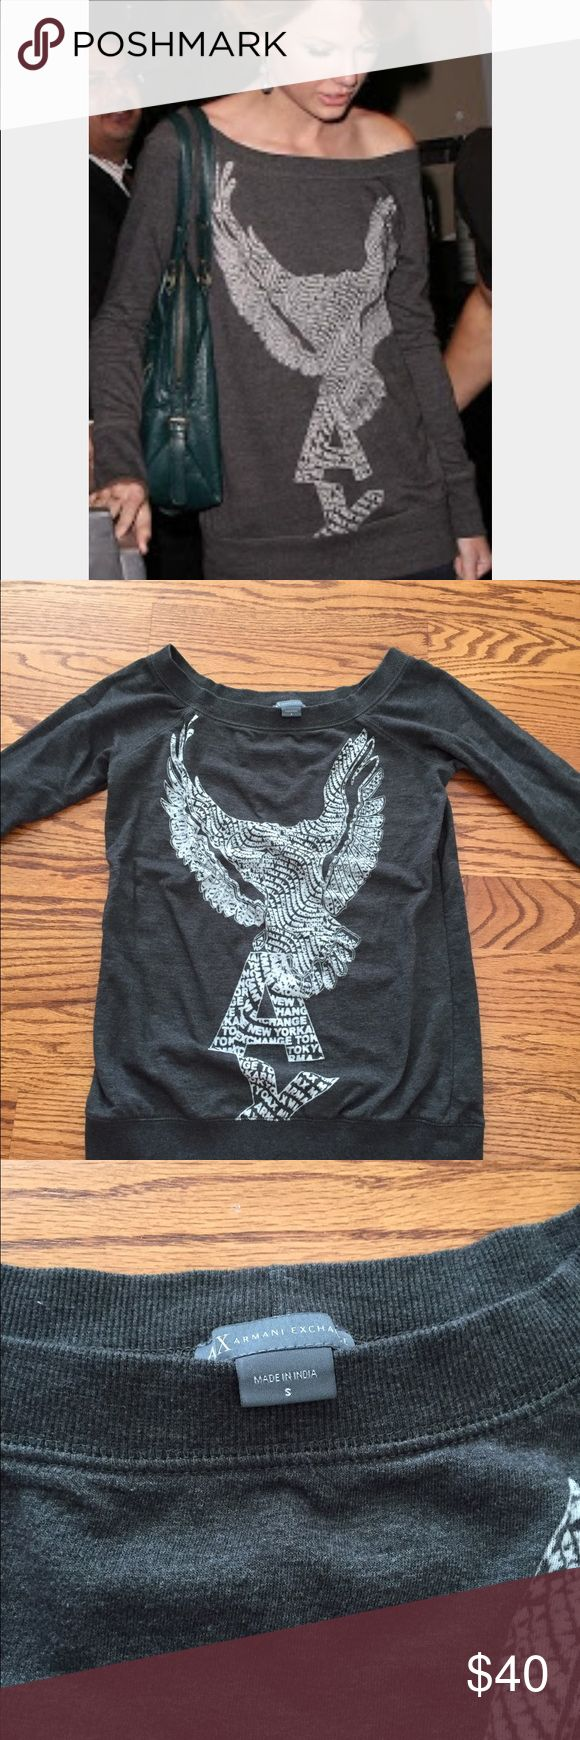 Armani Exchange off the shoulder sweatshirt As seen on Taylor Swift, Armani Exchange gray off shoulder burnout logo sweatshirt.  Can also be worn low on both shoulders.  Size small.  Tunic style, hits at the hips. A/X Armani Exchange Tops Sweatshirts & Hoodies